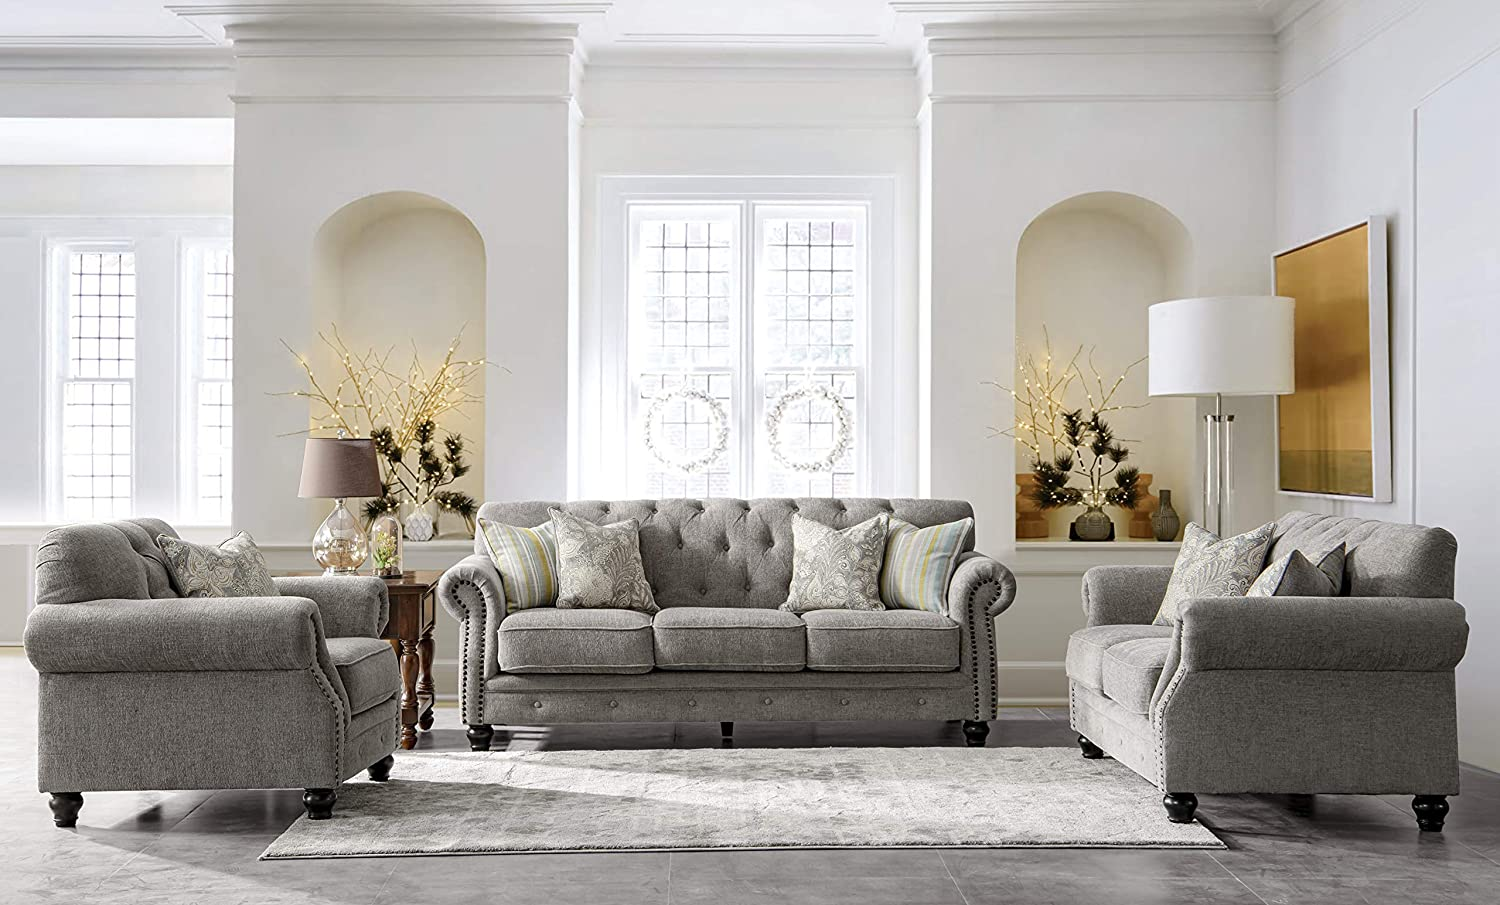 Chesterfield Chenille Living Room Set Sofa 3 Piece, Light Grey